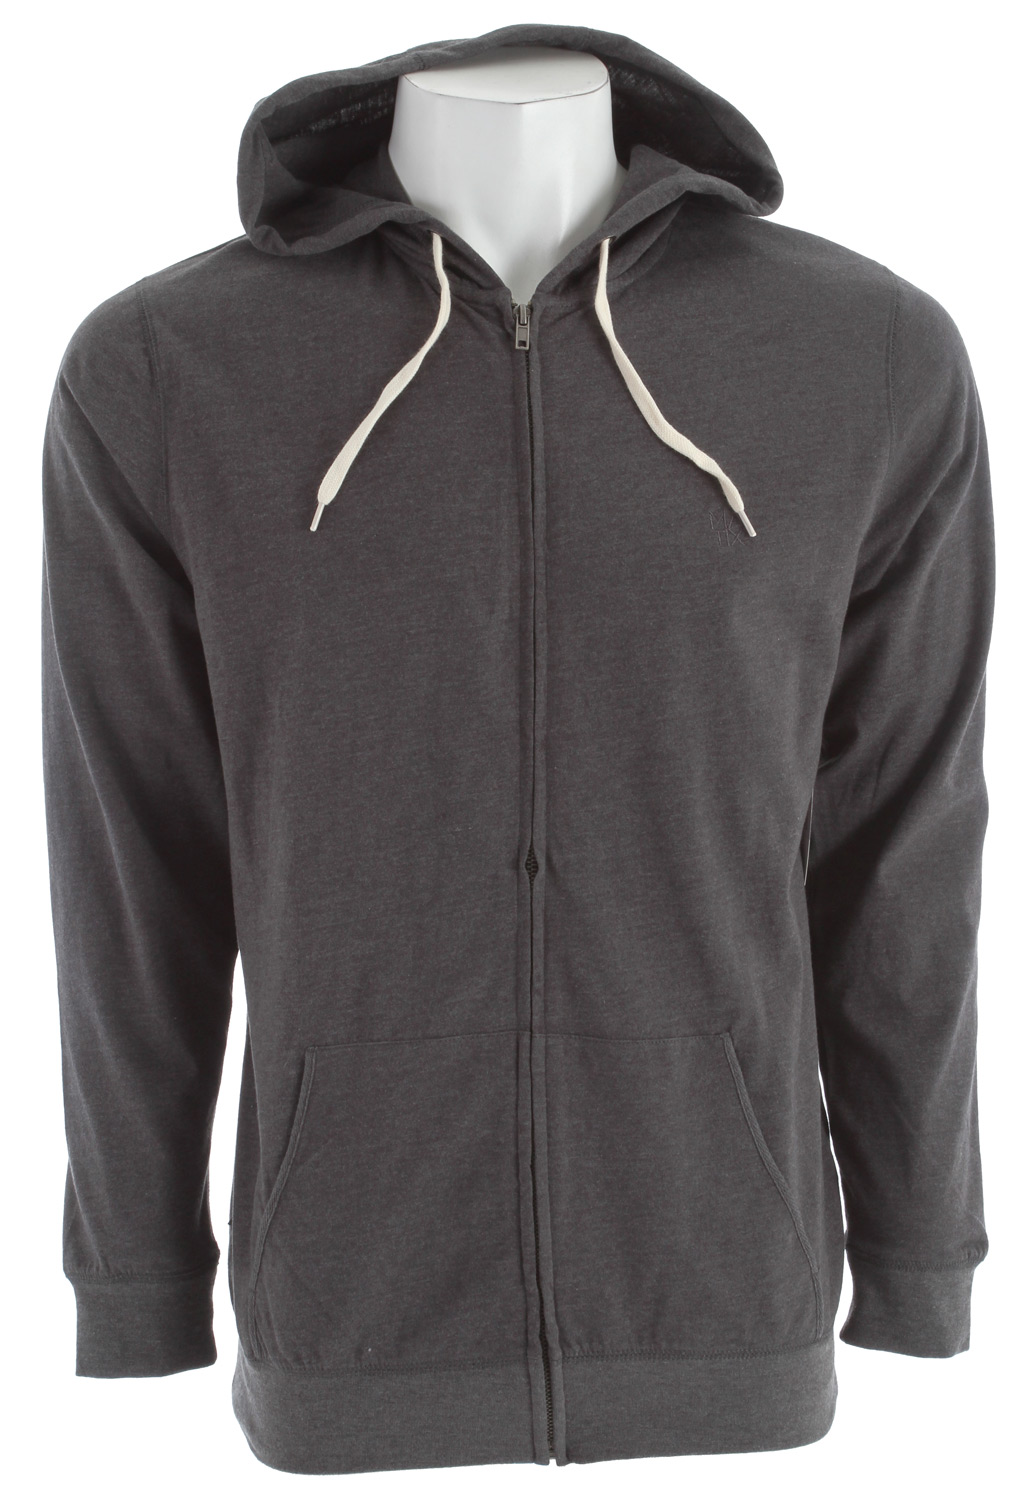 Key Features of the Matix Builders Zip Hoodie: 65% cotton/35% polyester jersey Comfortable, simple & lightweight Bottom pockets Embroidery at chest & Matix labeling - $31.95